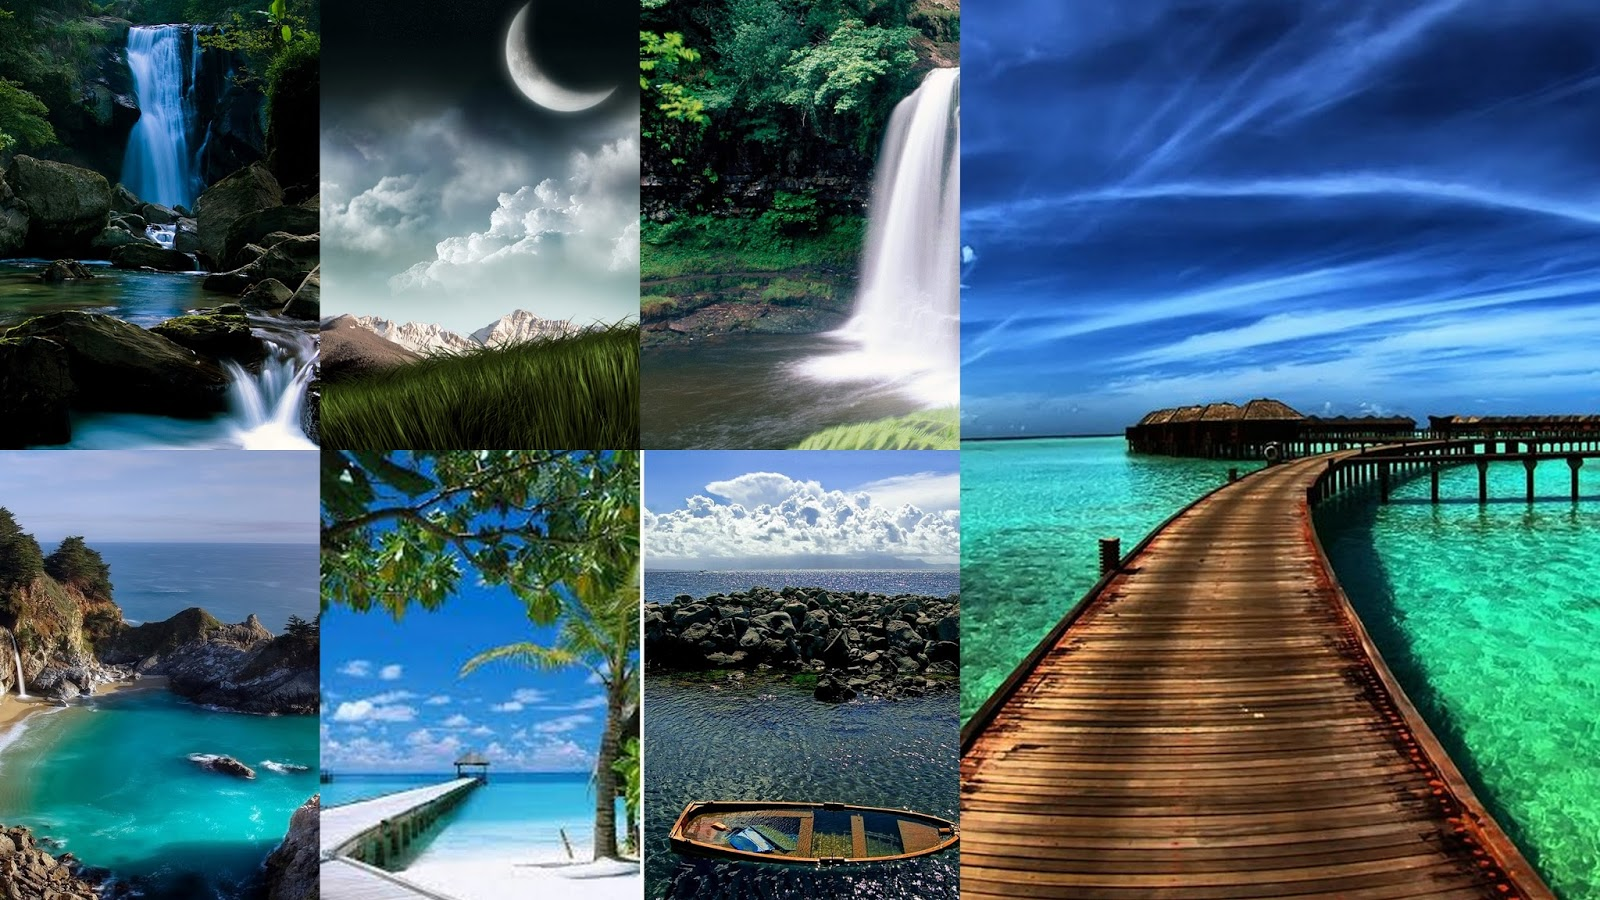 Hd wallpaper pack download - Nature Wallpapers Pack Pack Contains 100 Hd Pics Wallpaper Packs